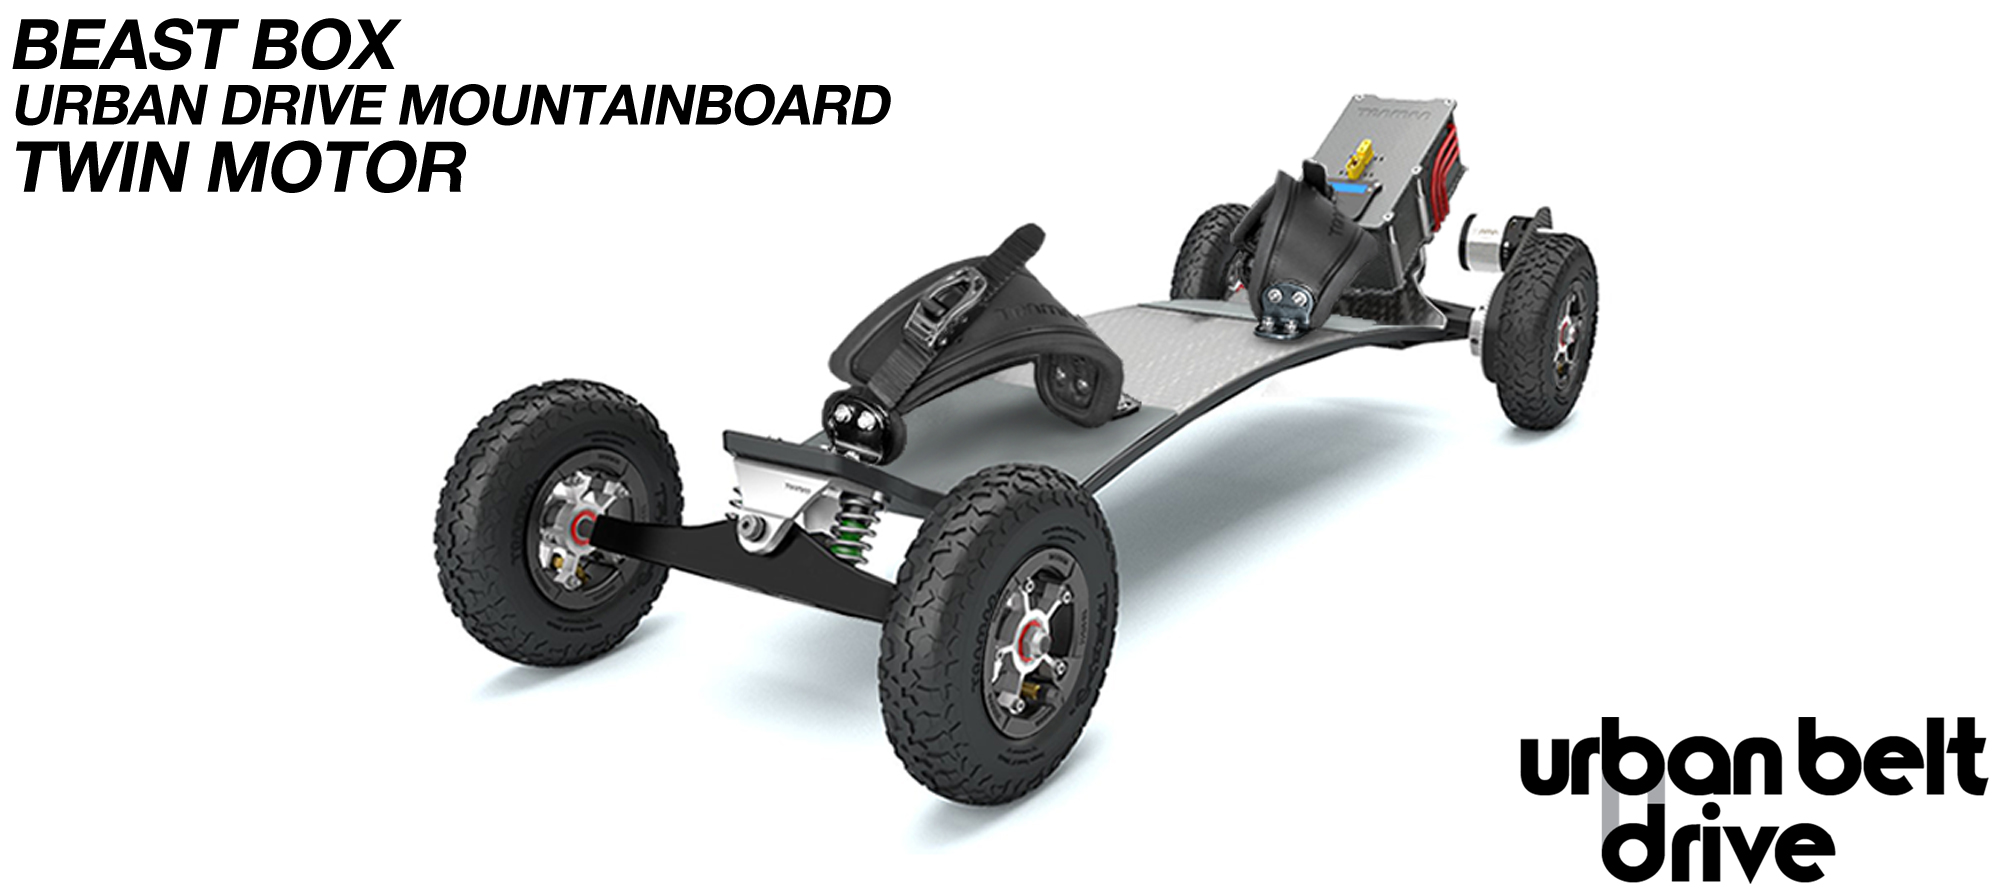 URBAN Electric Mountainboard - Urban Motor Mounts on Custom TRAMPA deck ATB Trucks 8 inch Wheels BEAST Box TWIN Motor with VESC